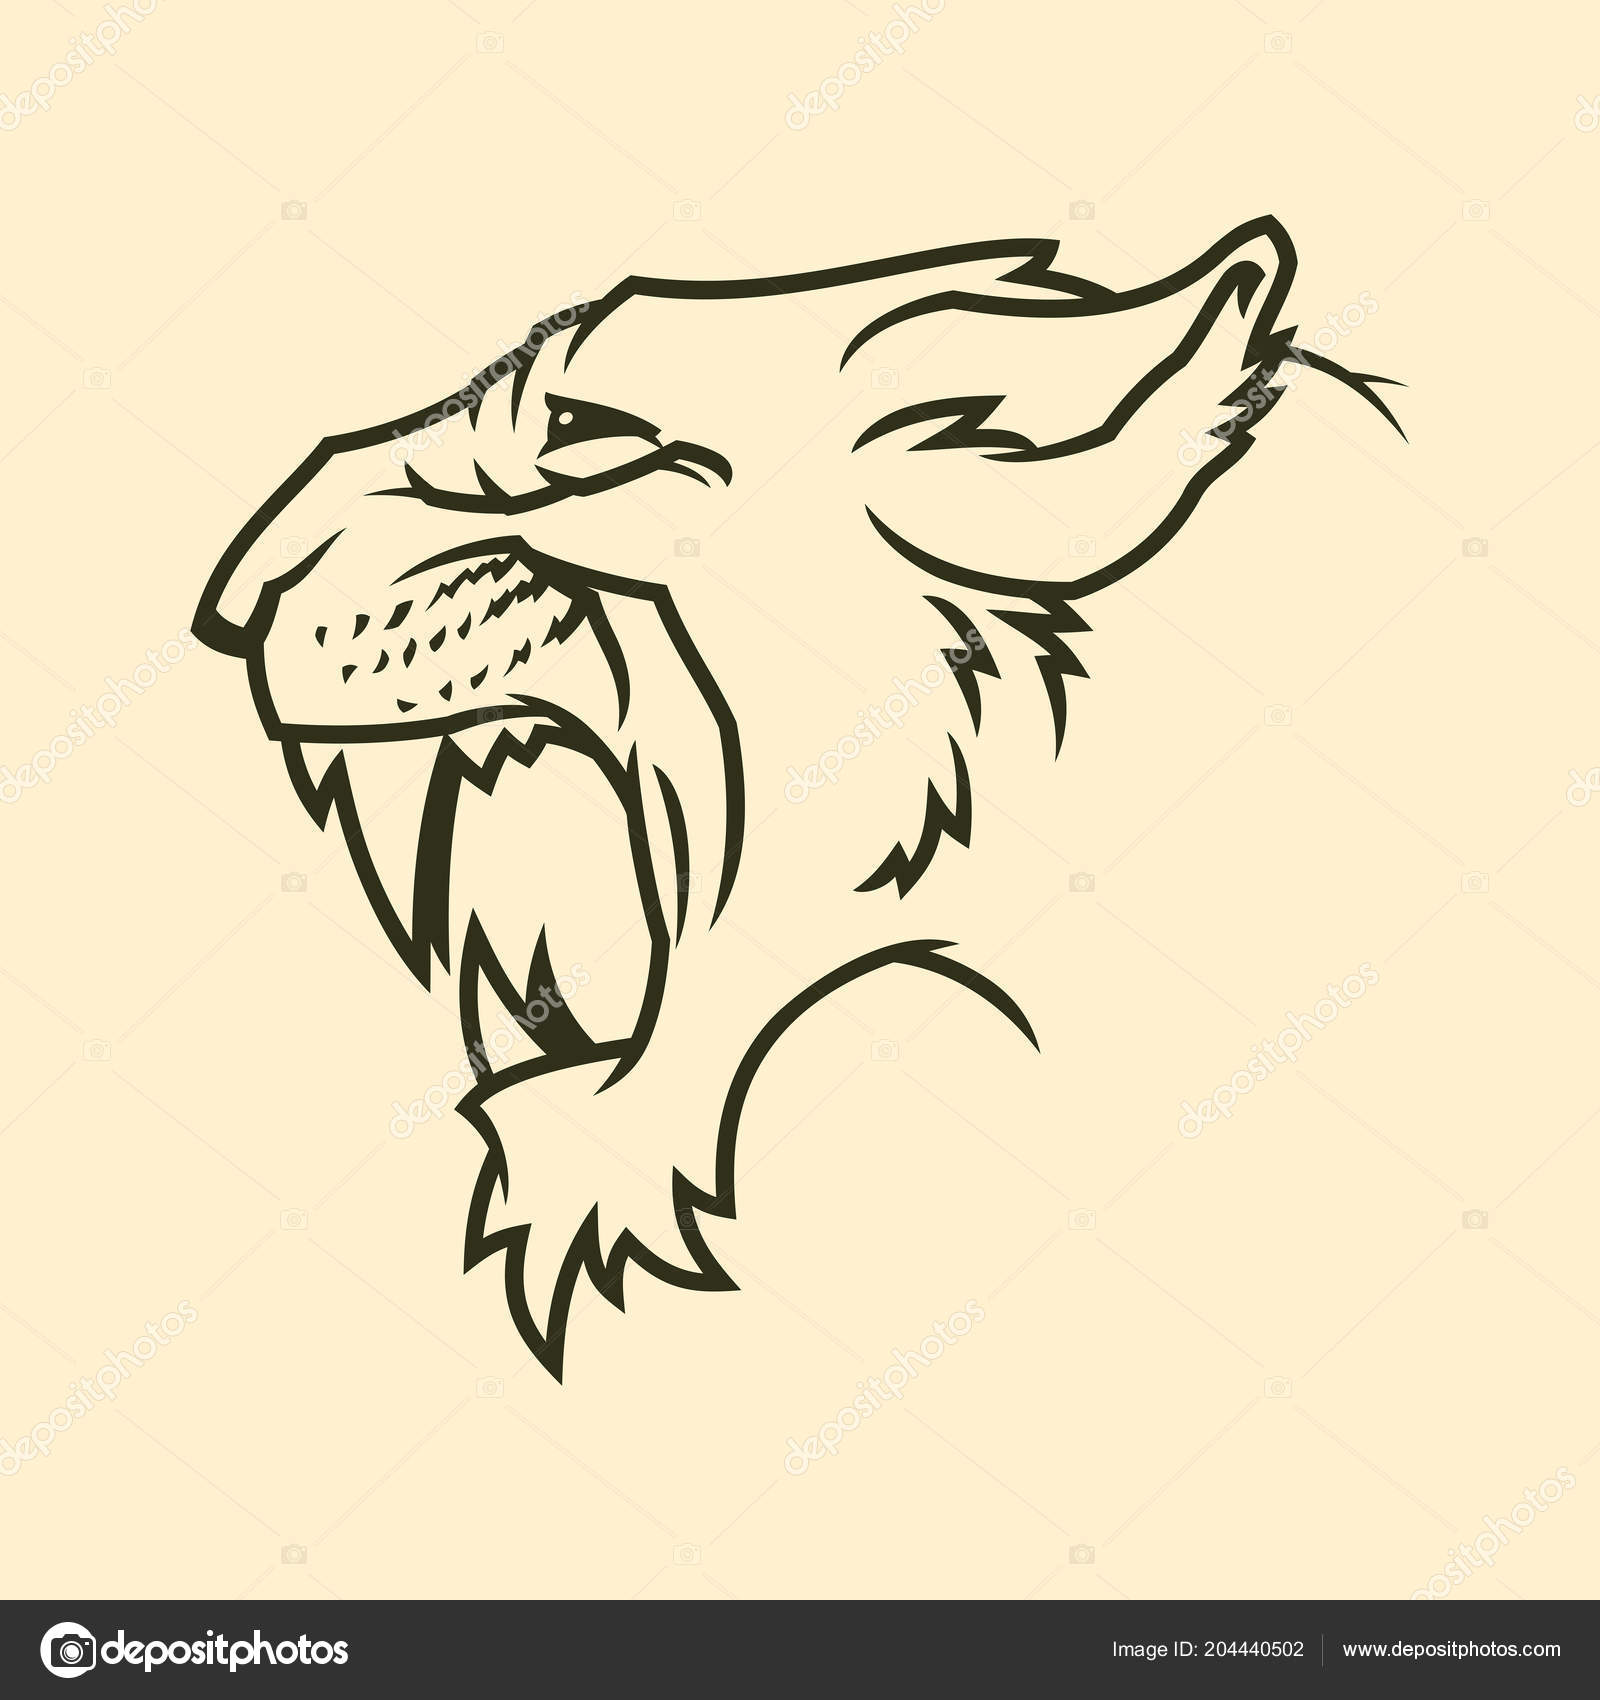 3a3478c9865 Cougar or panther head silhouette — Stock Vector © gala_che #204440502